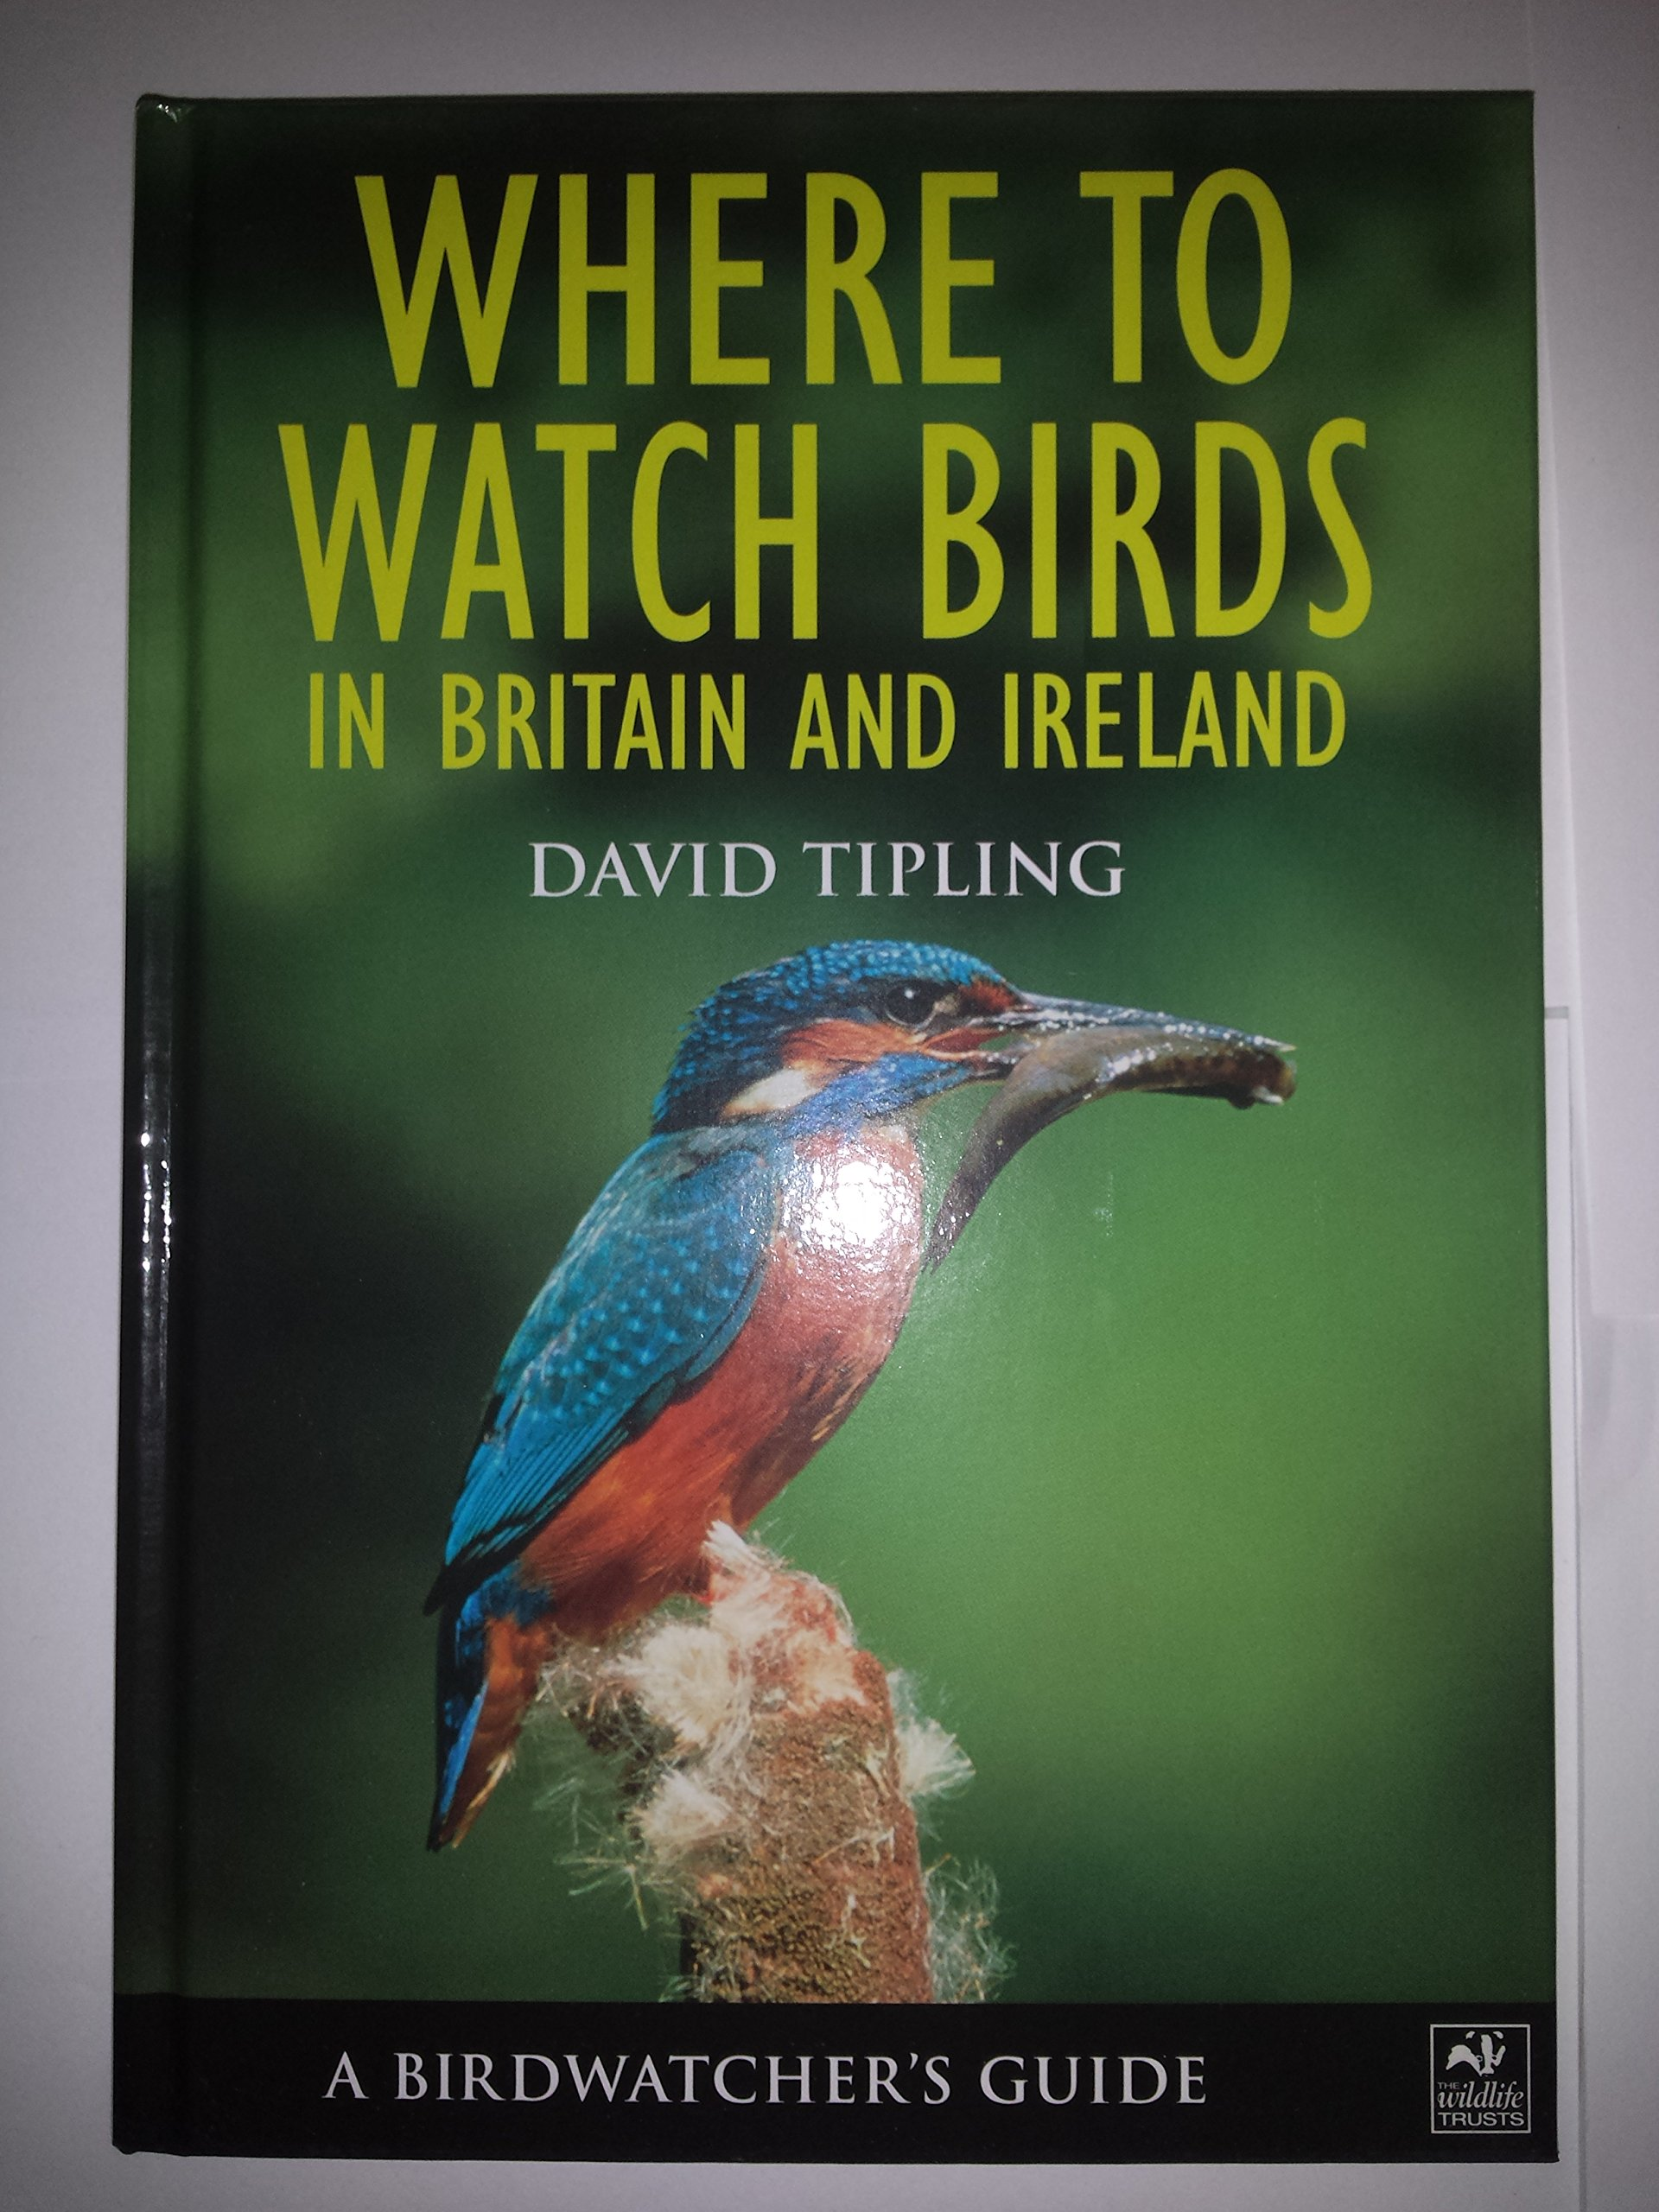 A Birdwatchers Guide Where To Watch Birds In Britain And Ireland Amazoncouk David Tipling 9781843301523 Books